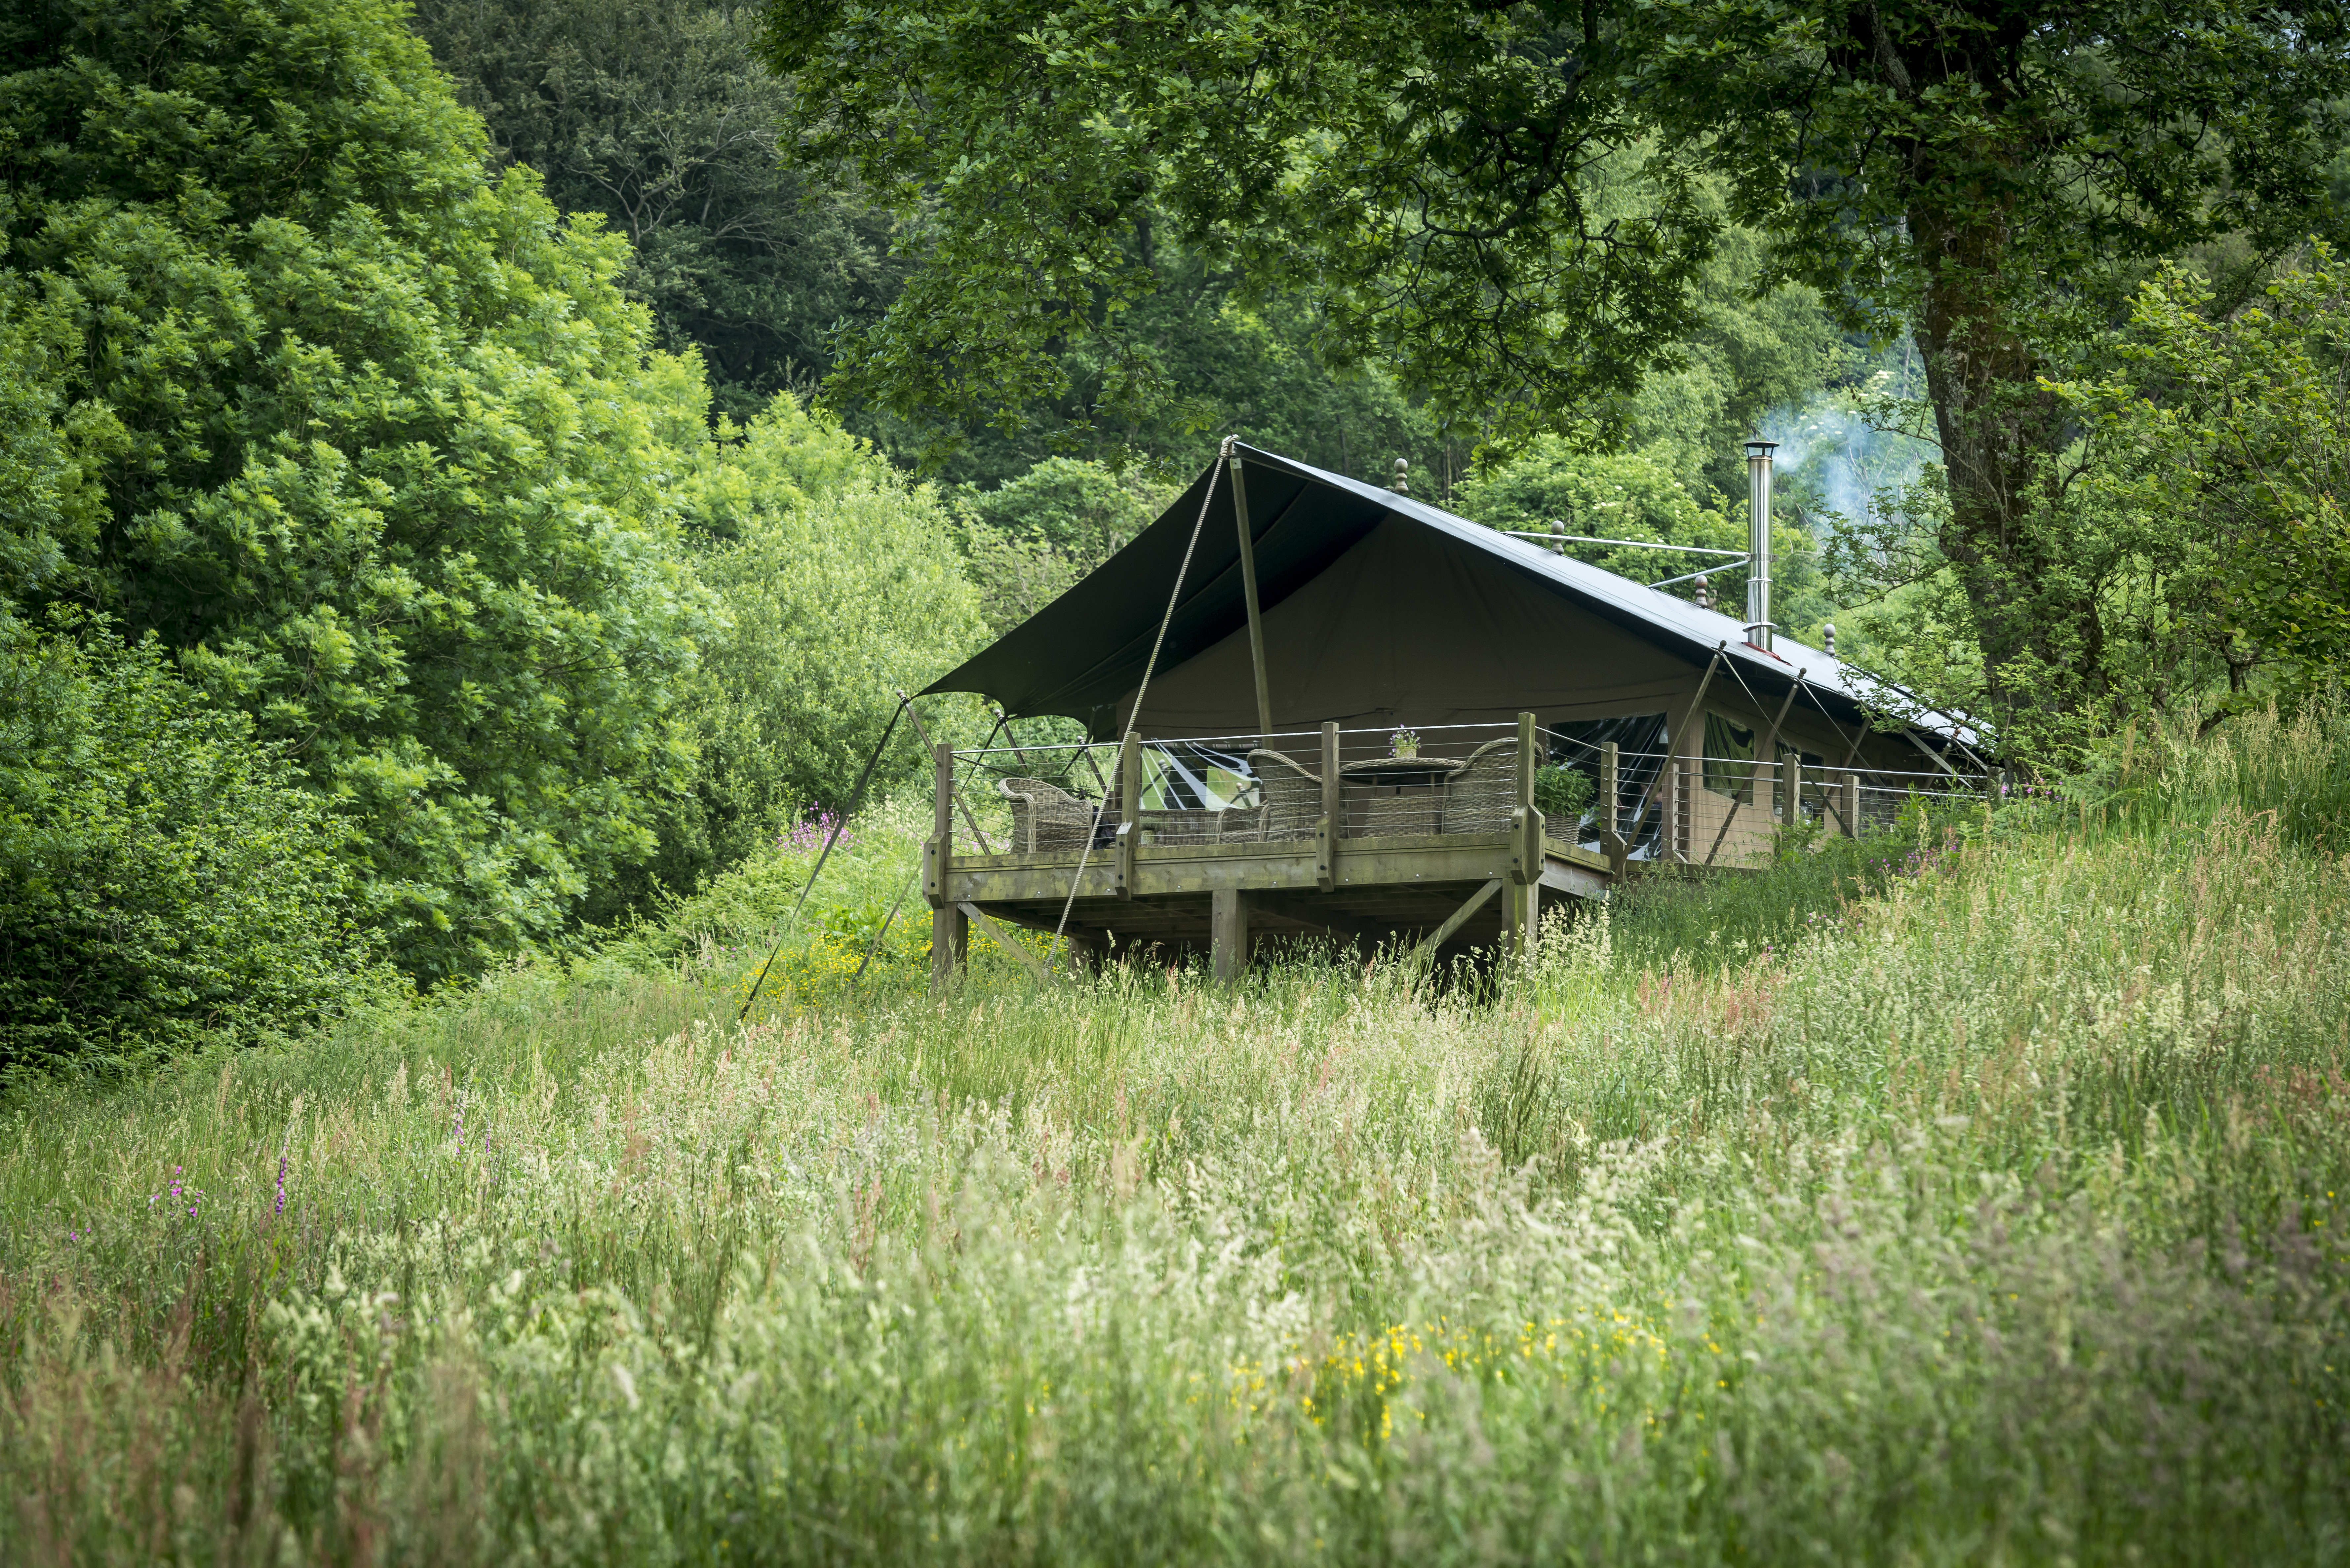 Longlands award winning luxury glamping for family, couples or friends.